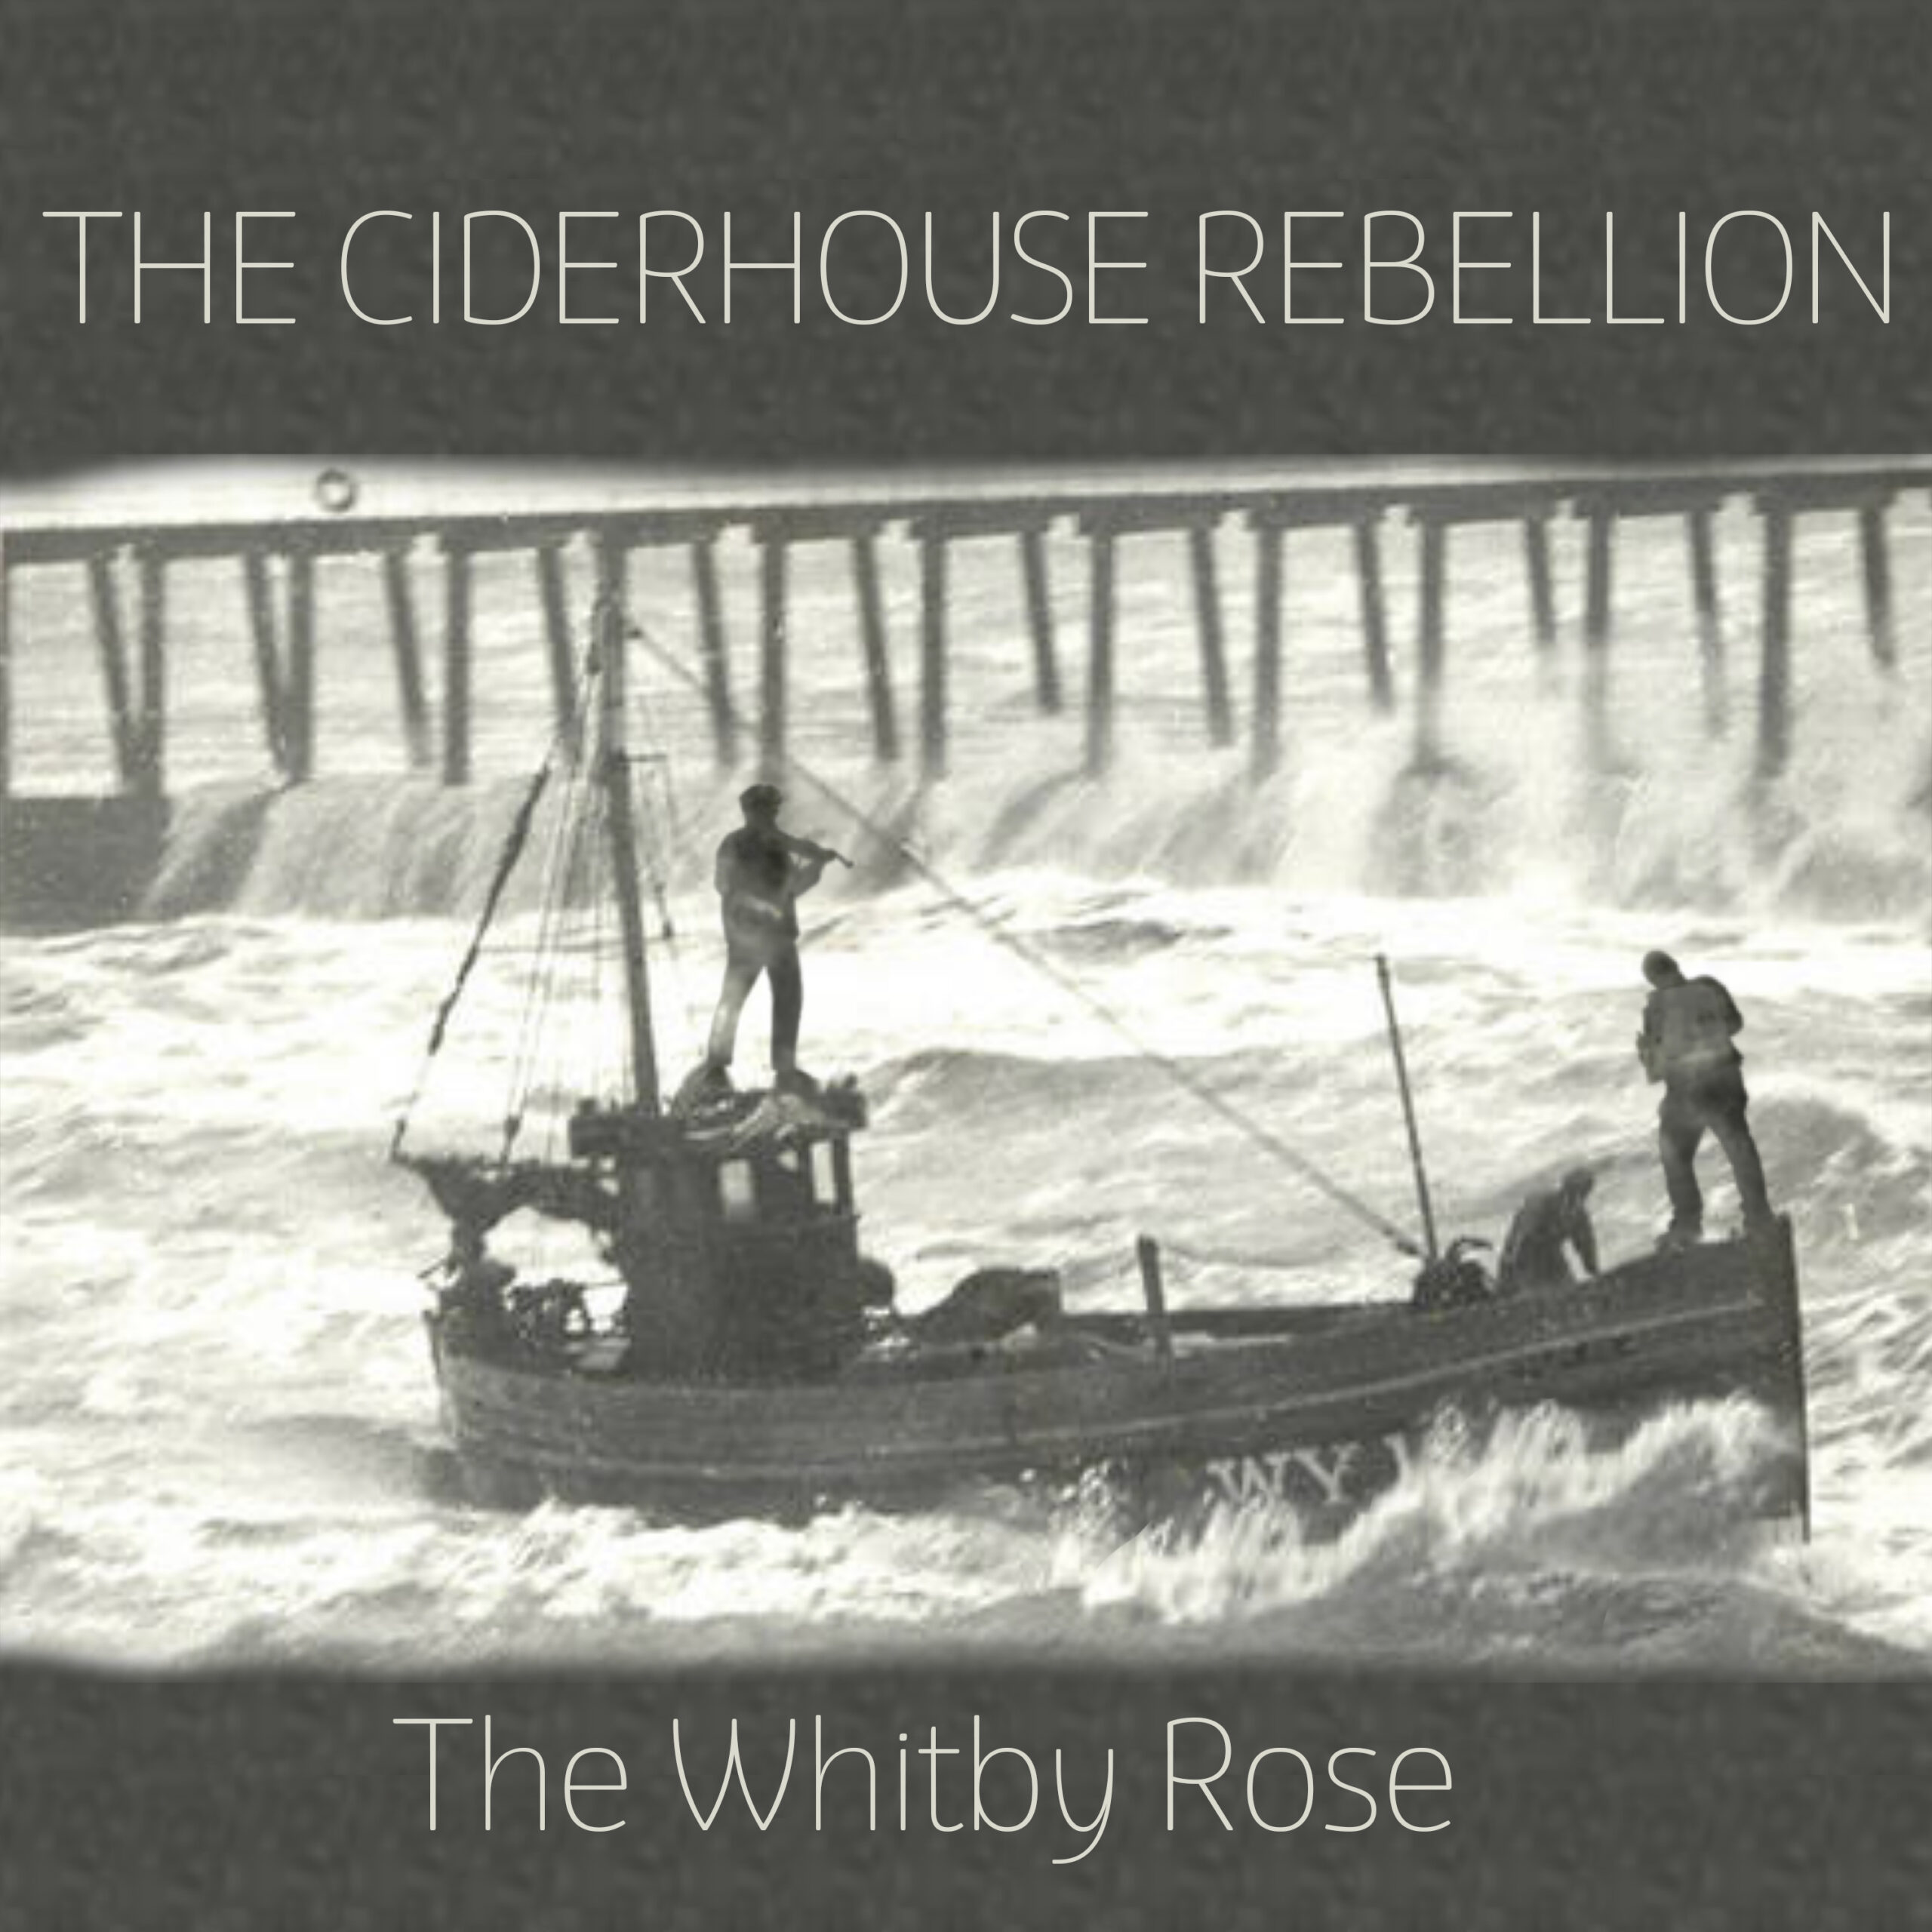 New Track from The Ciderhouse Rebellion